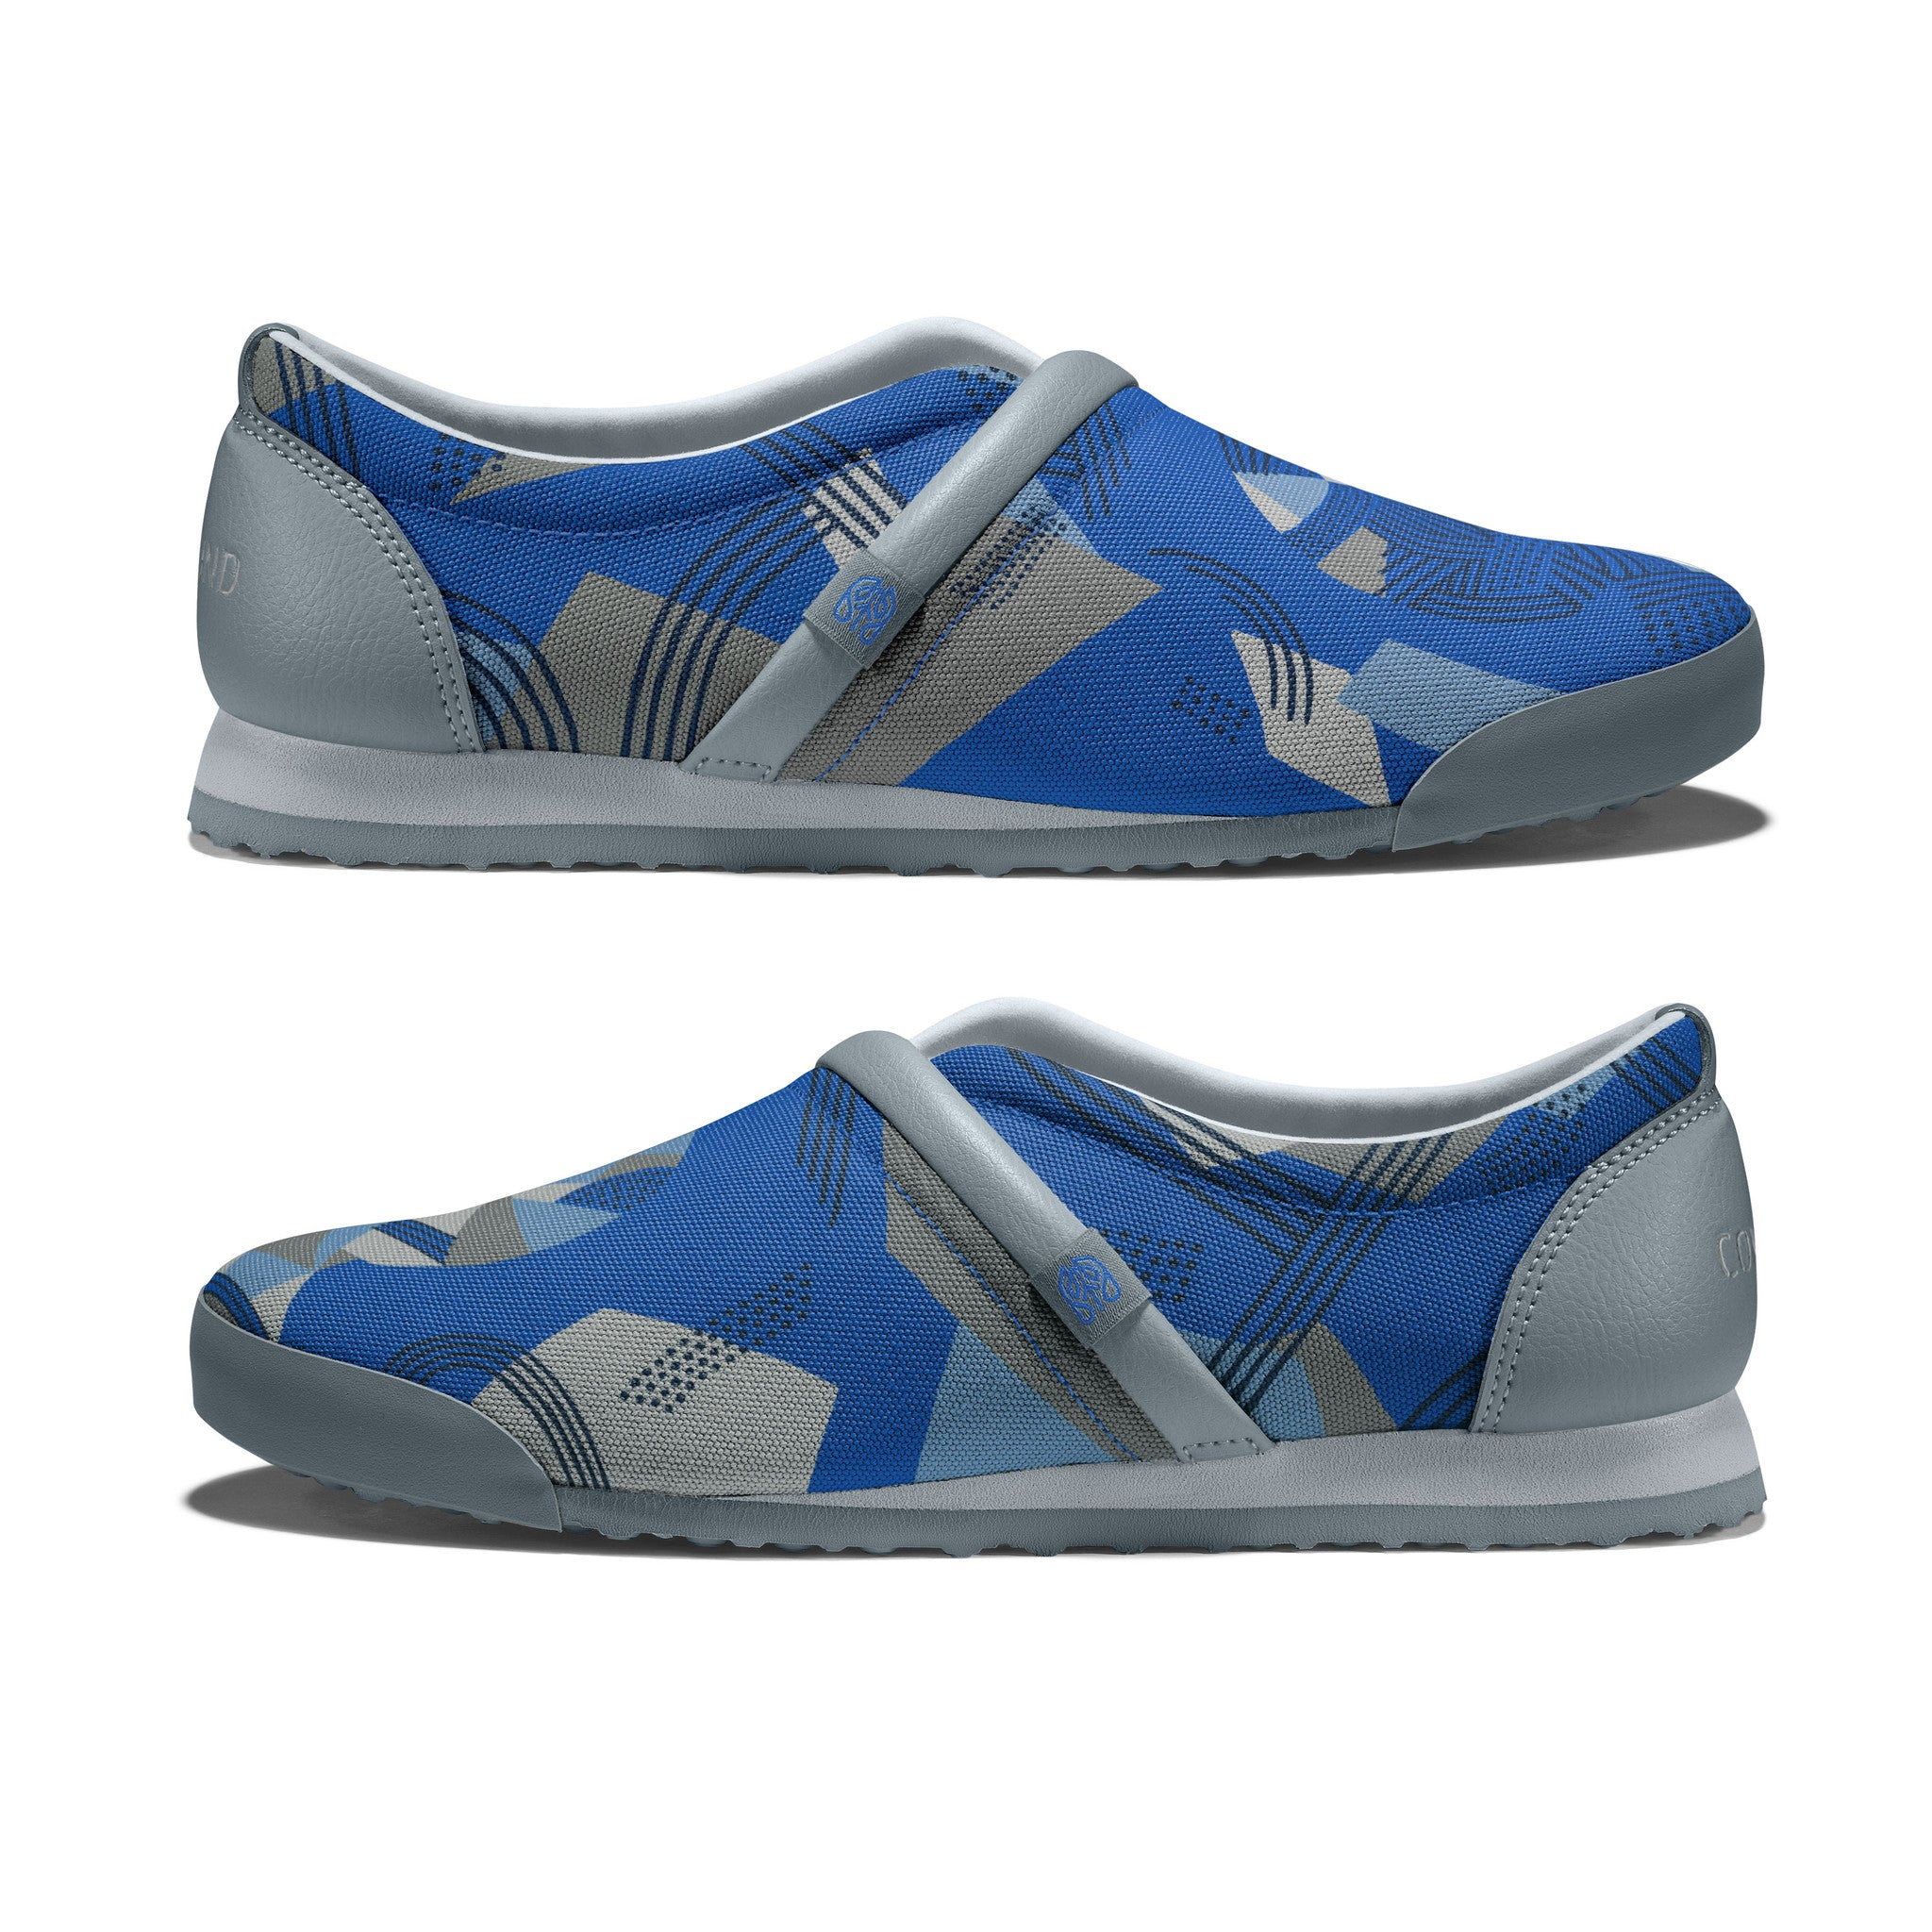 Strong_Blue - Common Ground Footwear Shoes Side View